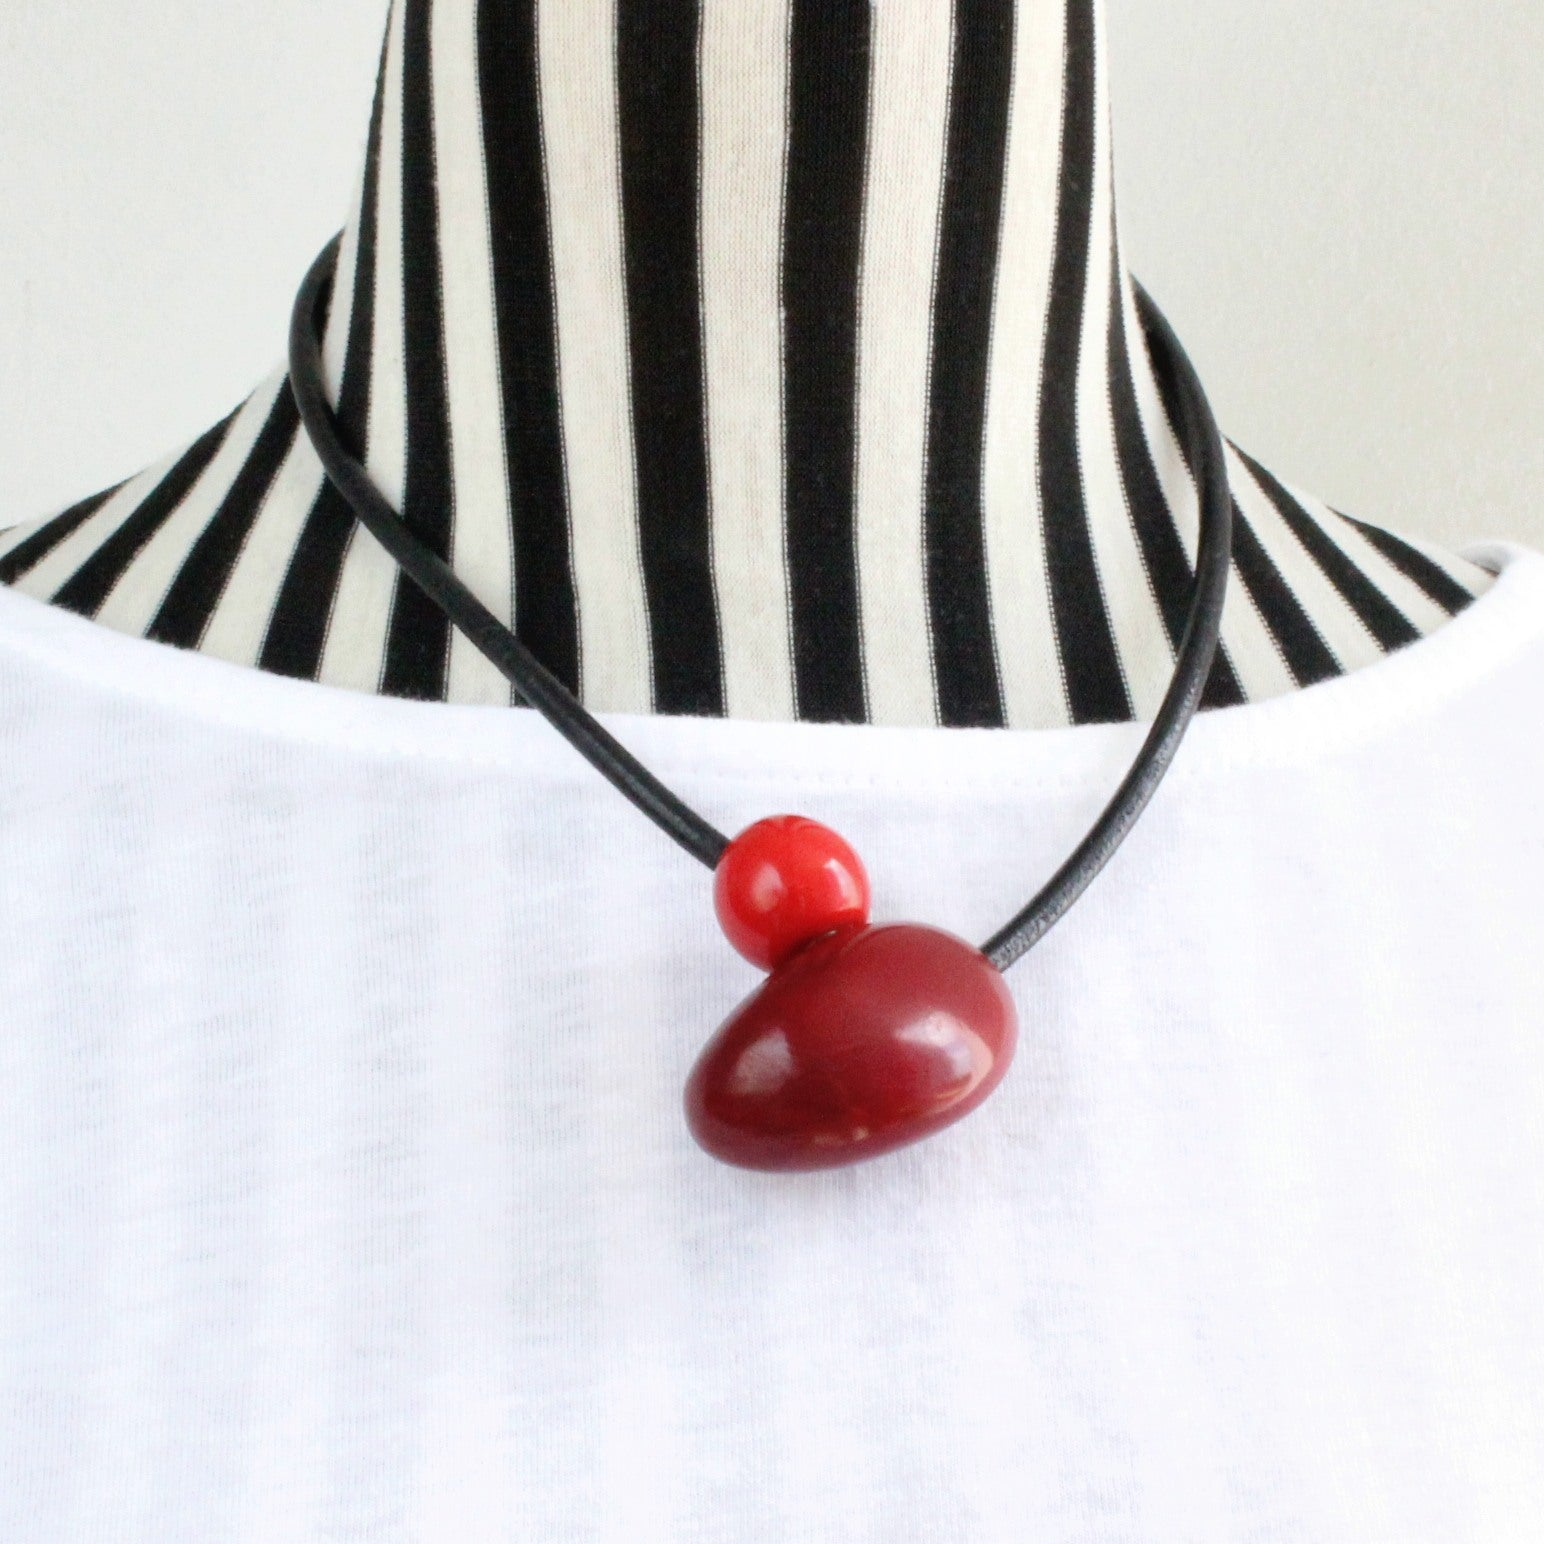 Handmade necklace, tagua nut, sustainable, magnet, burgundy, stand